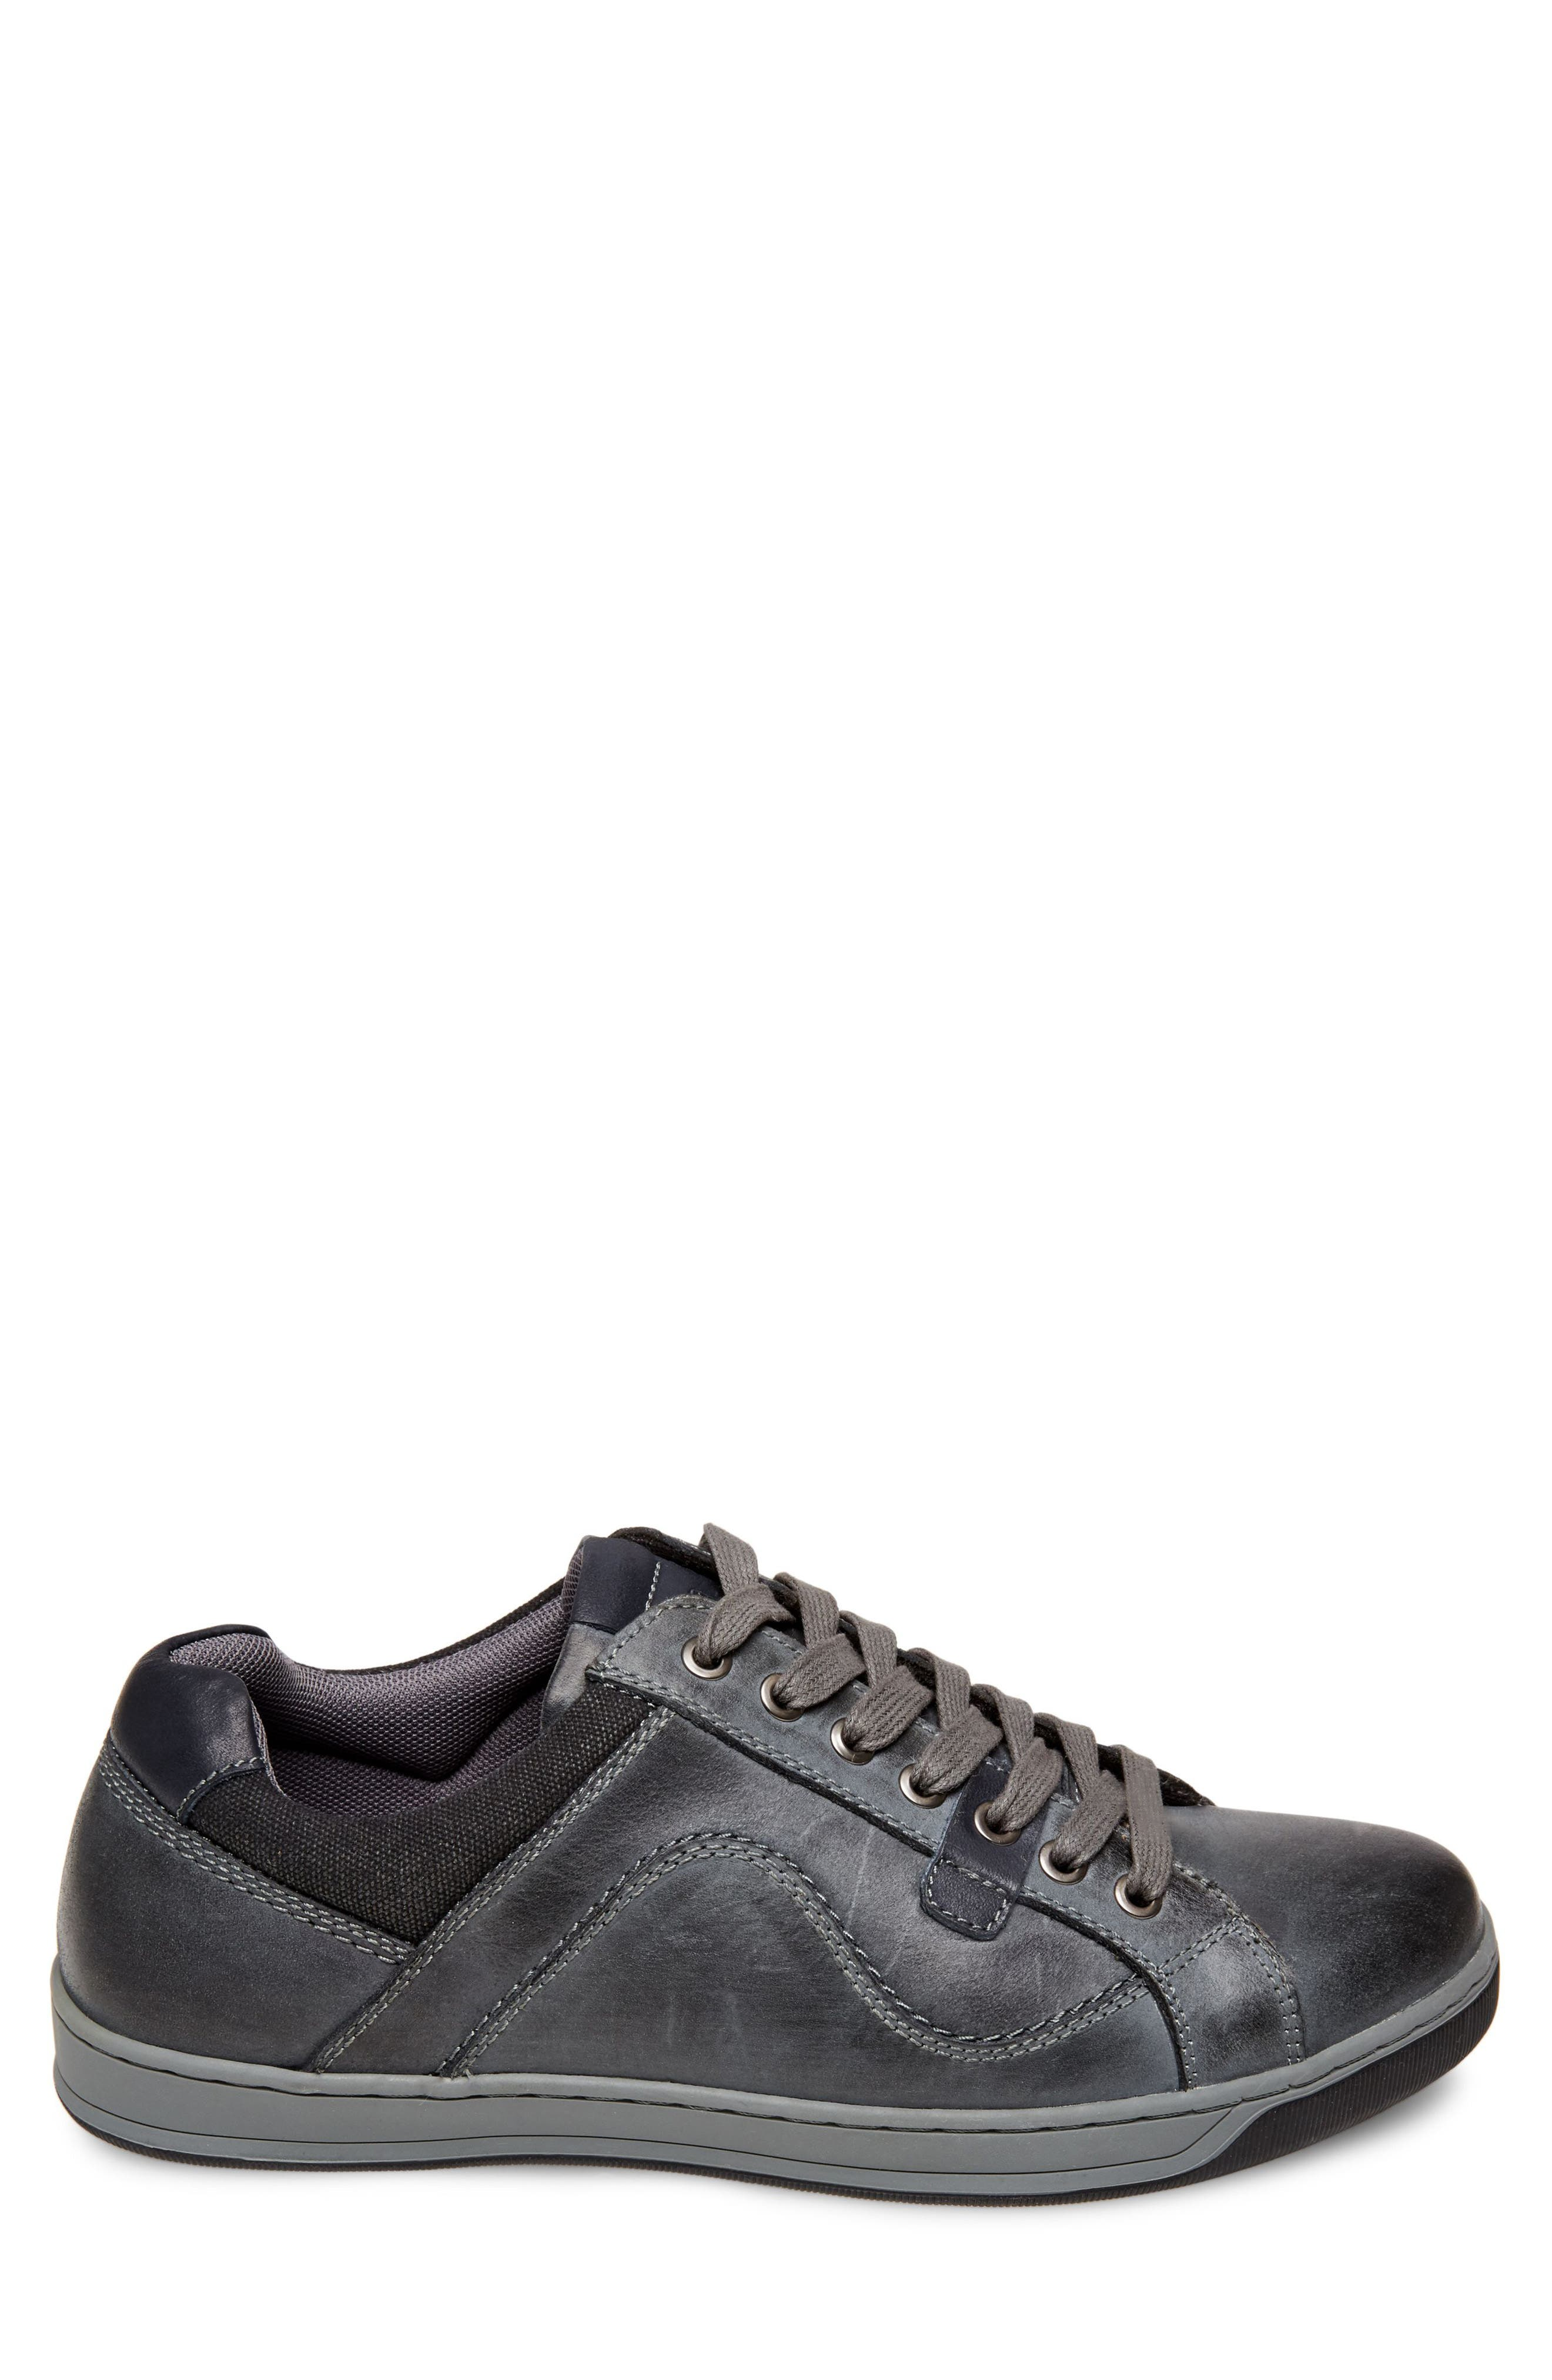 Chater Low Top Sneaker,                             Alternate thumbnail 5, color,